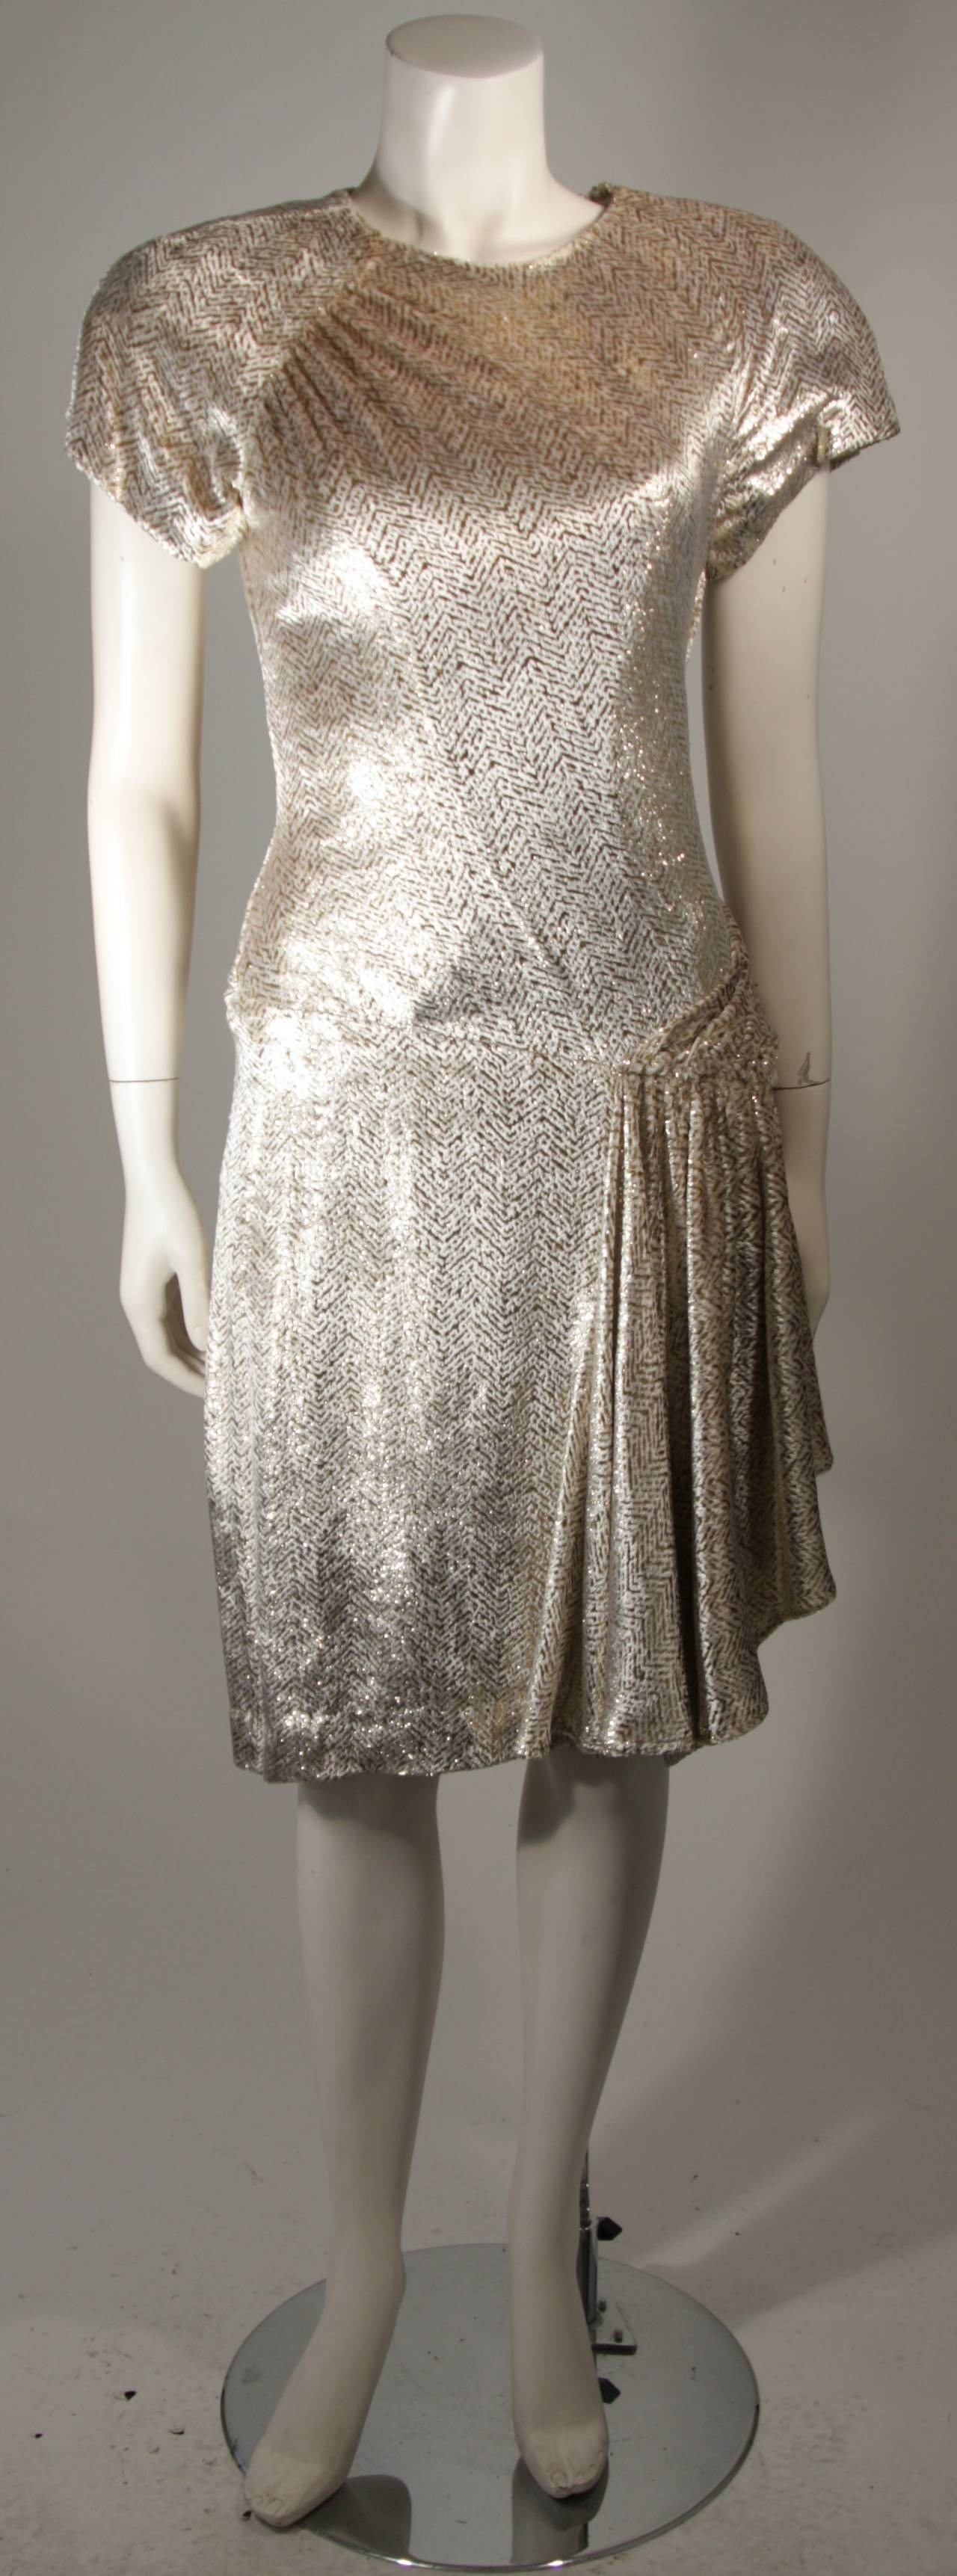 This Vicky Tiel dress is composed of an Ivory and gold metallic velvet blend. There are gathers and draping at the hip with padded shoulders, and a center back zipper closure. In excellent condition. Made in France.  This item is from the personal